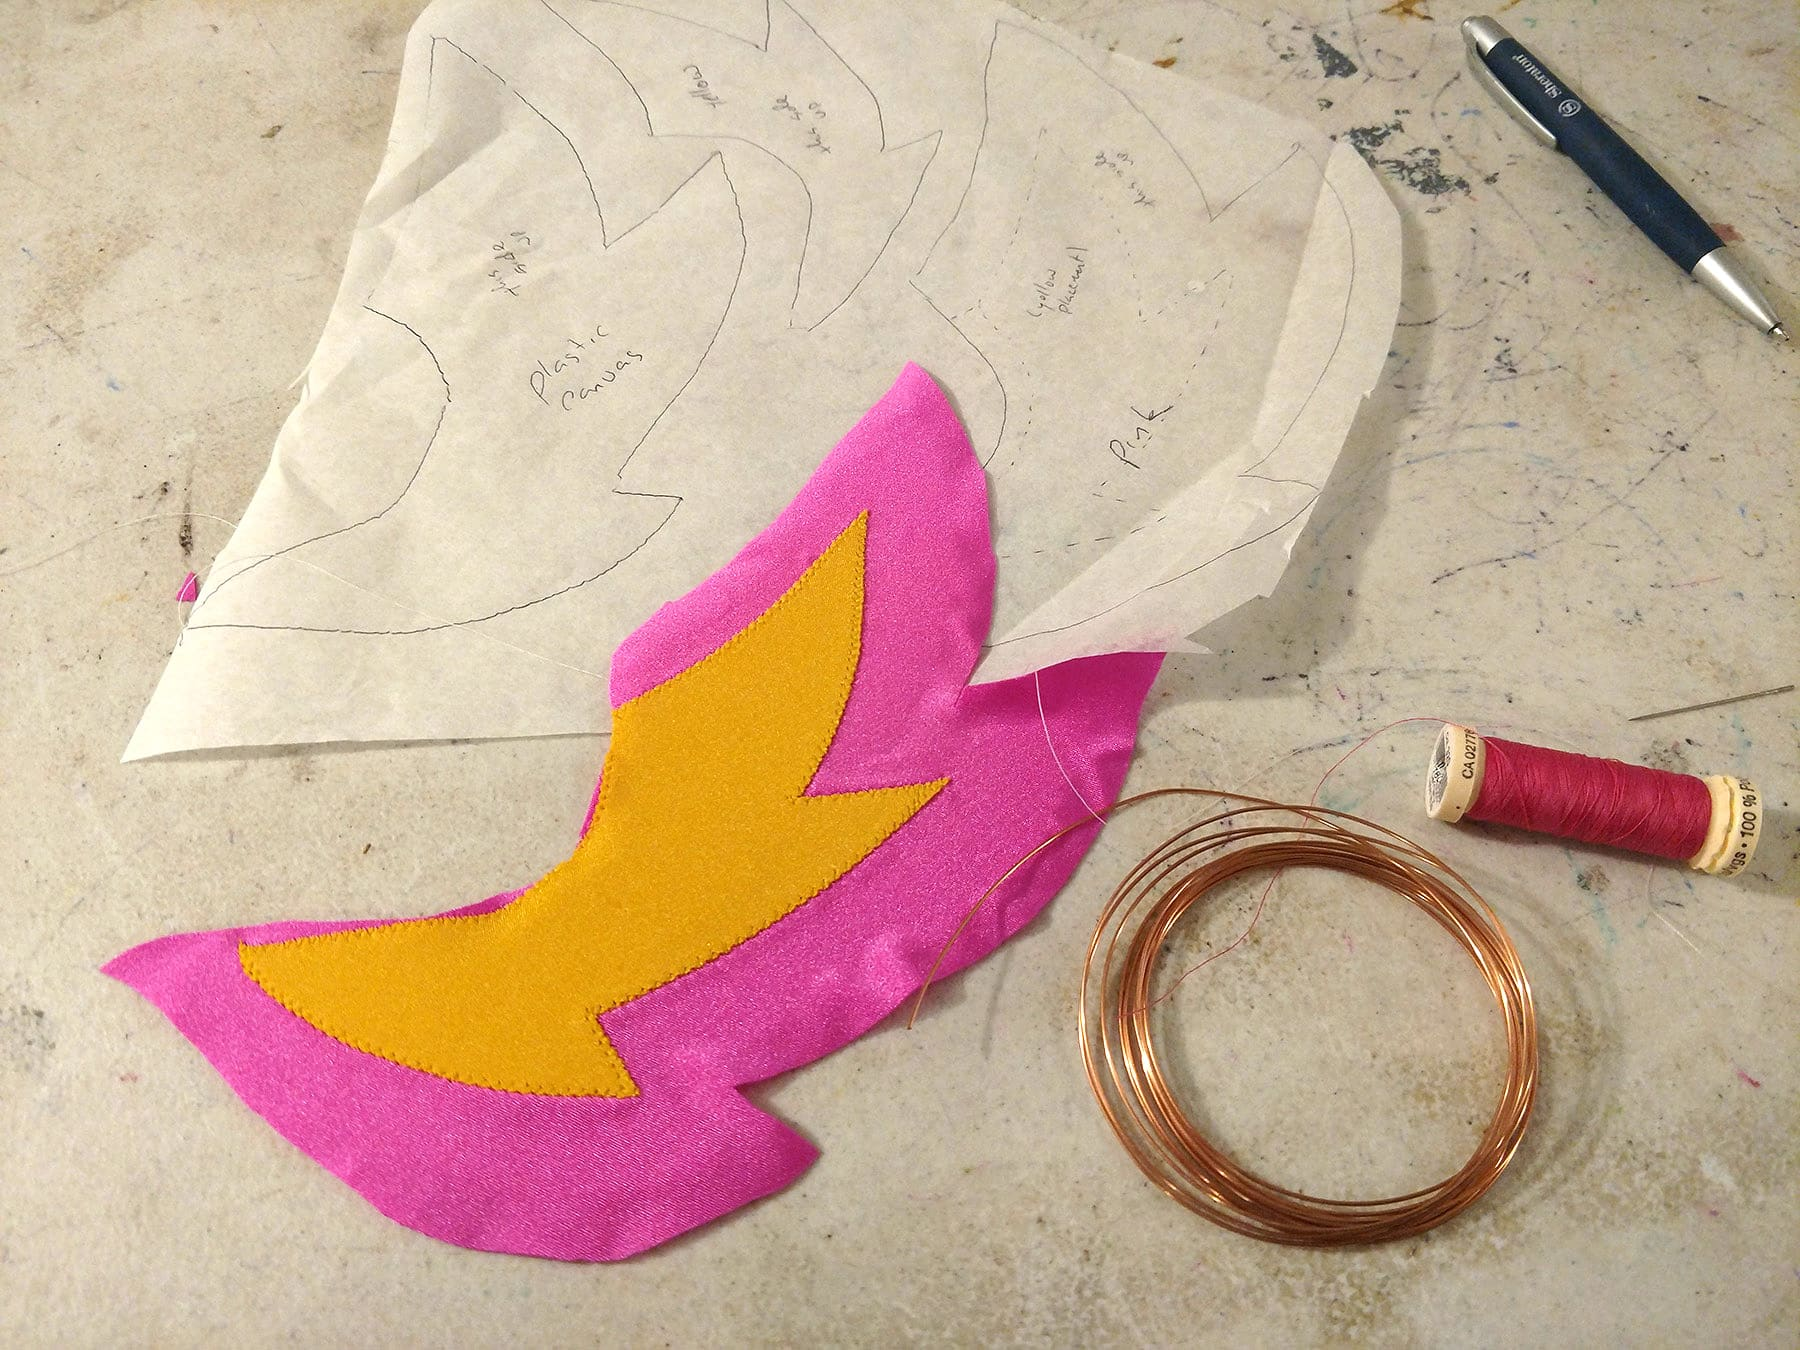 A paper pattern for a headpieces, along with copper coloured cord, pink thread, and a pink and yellow piece of appliqued spandex.